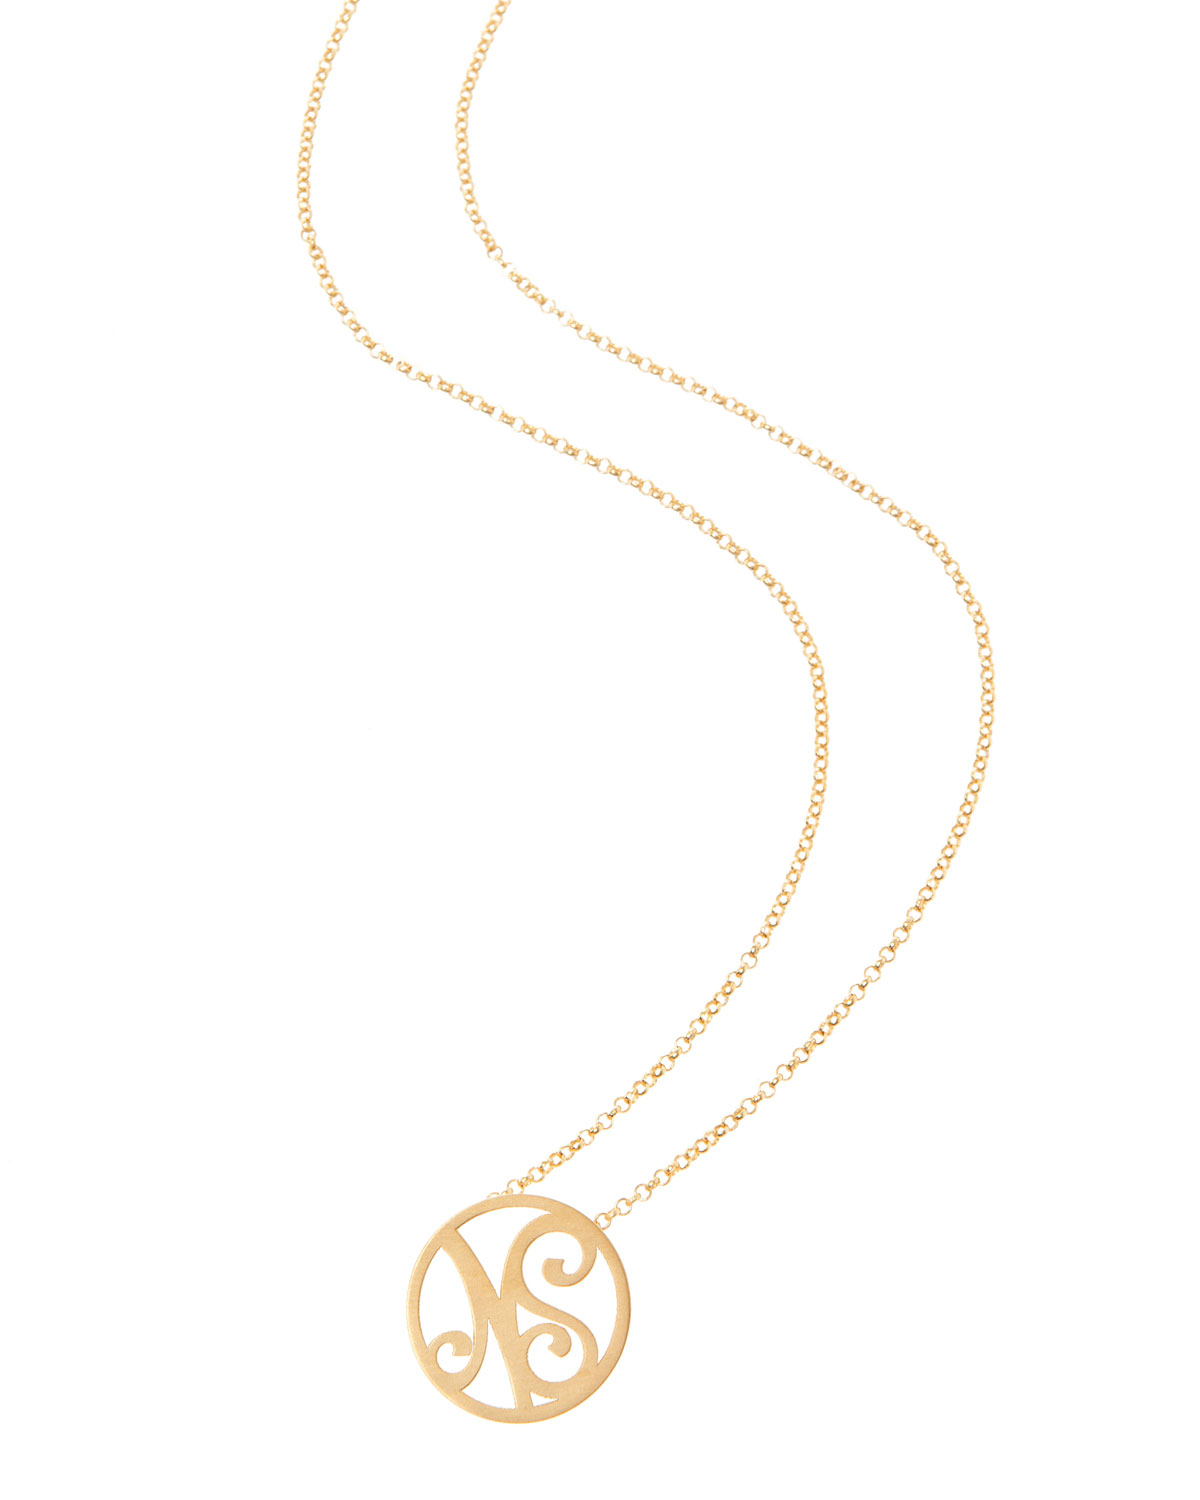 K Kane Small 2-Initial Monogram Necklace, Yellow Gold, 18